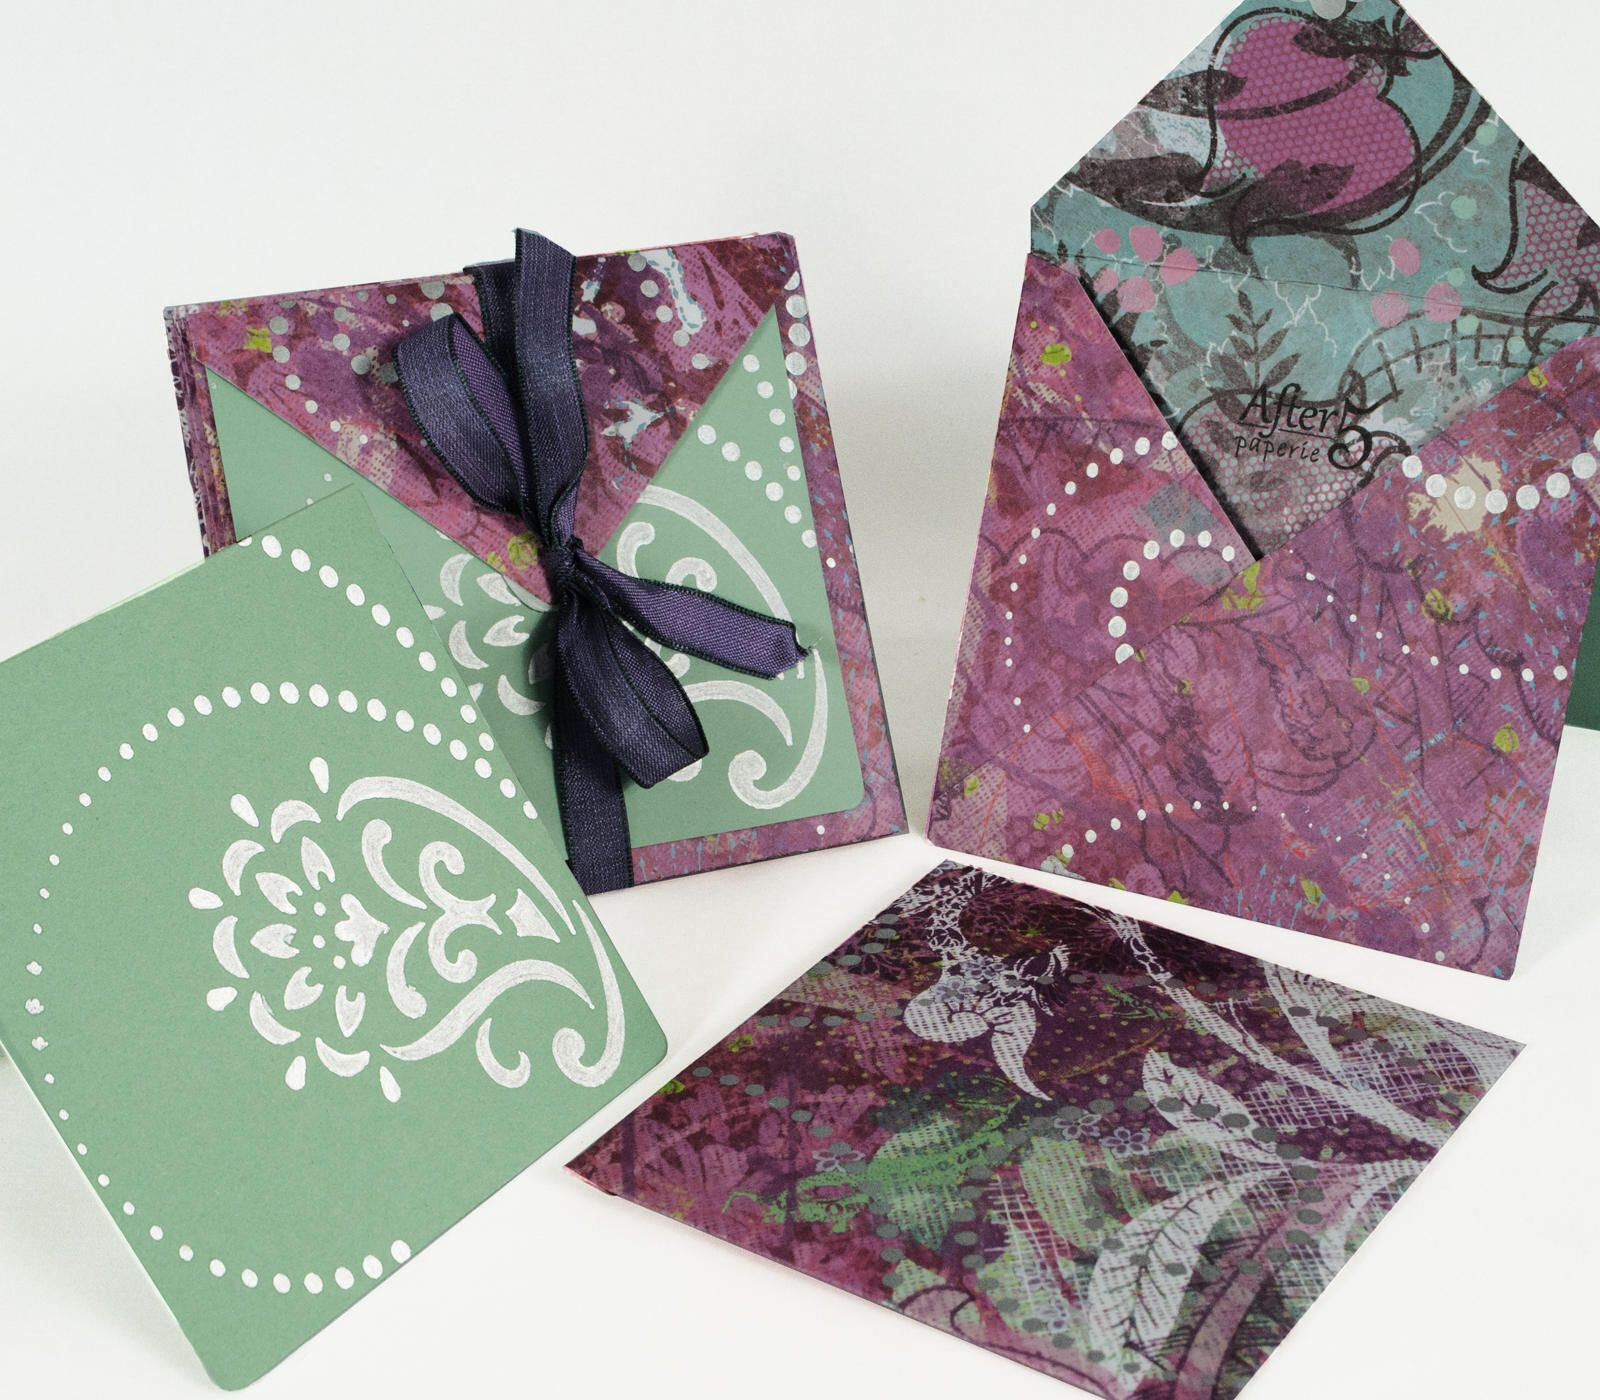 Colored card stock and envelopes - Handmade Envelopes Note Cards Orient Inspired Purple With Silver Detailing Pkg Of 8